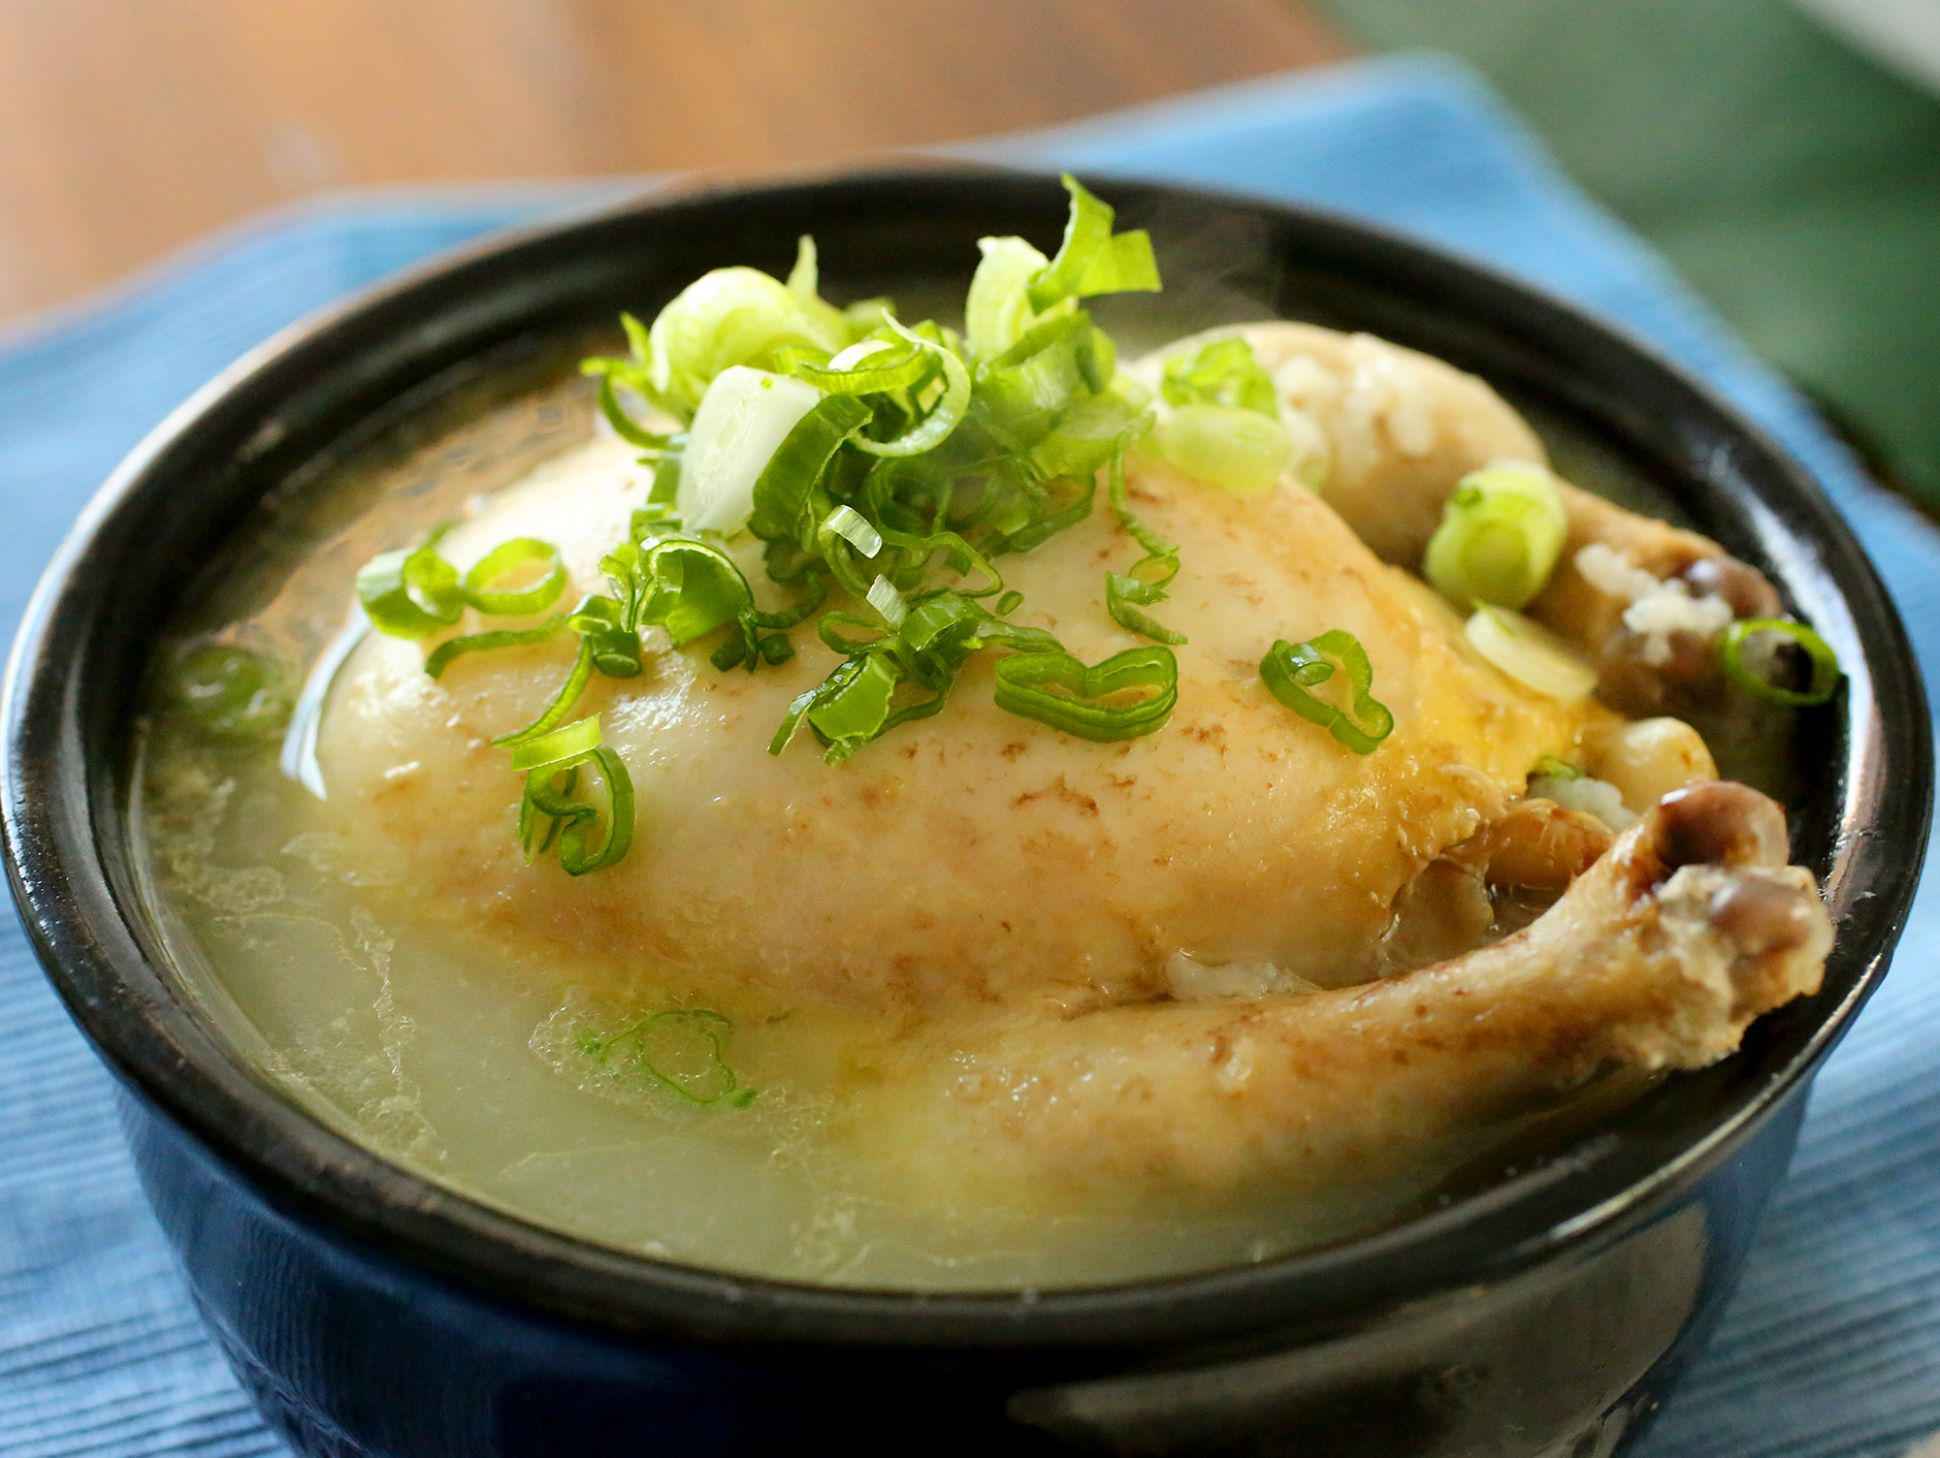 Samgyetang - Soup Recipes Korean